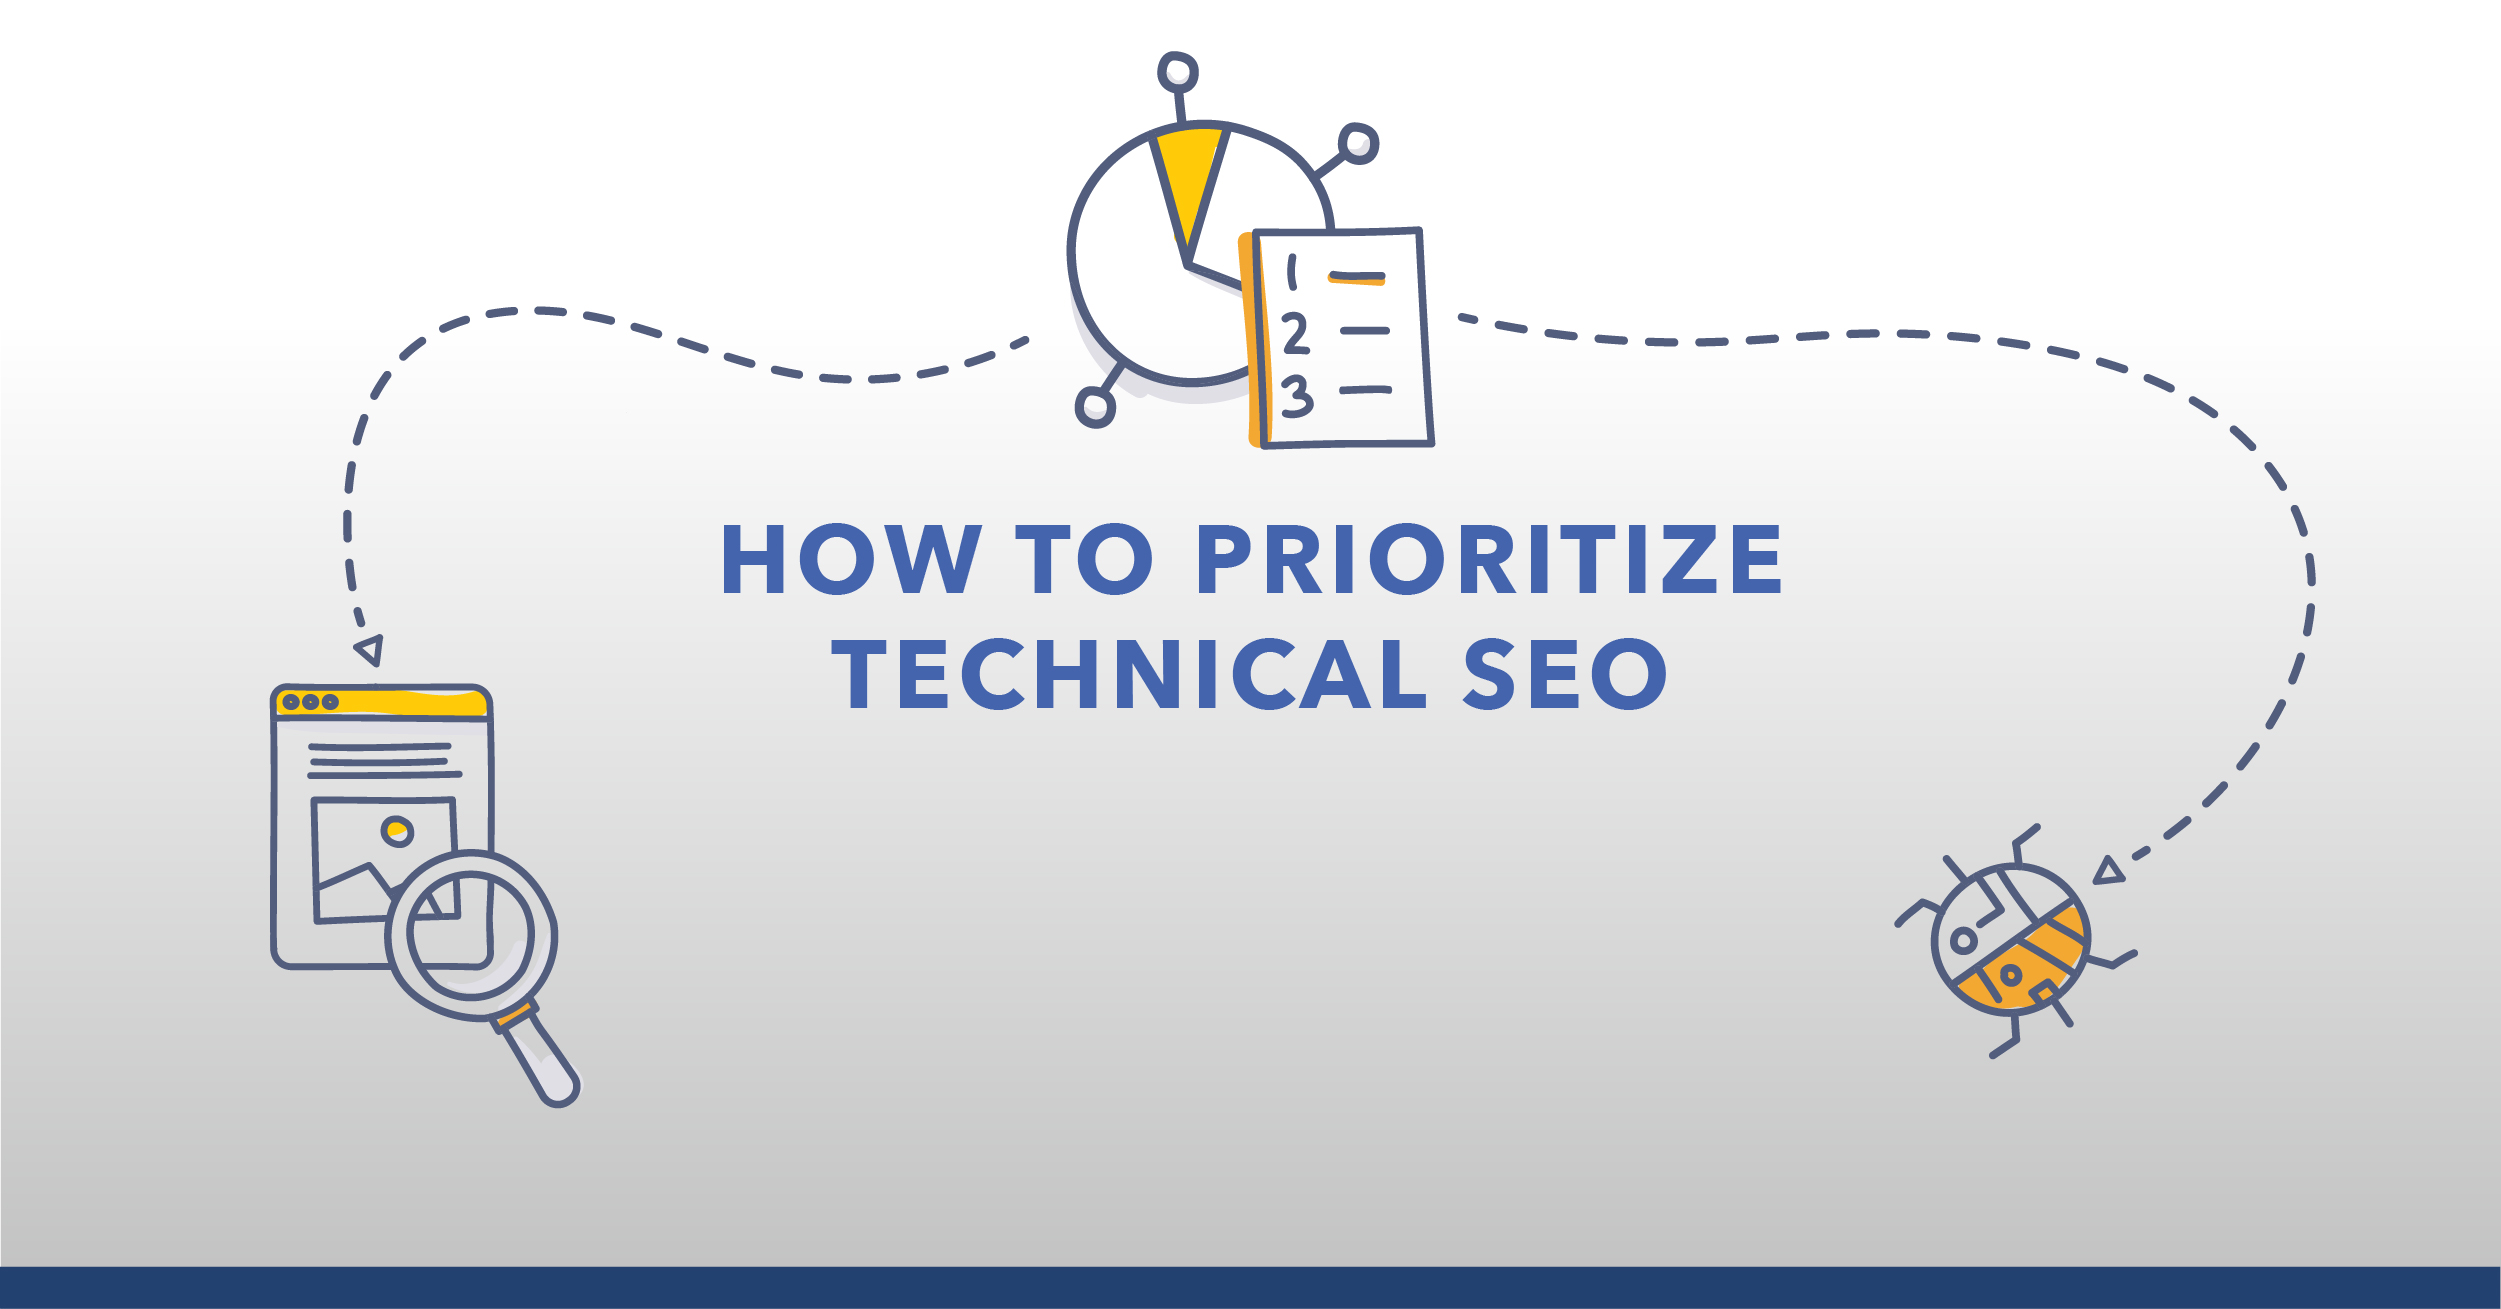 Technical SEO: Best Practices to Prioritize Your SEO Tasks